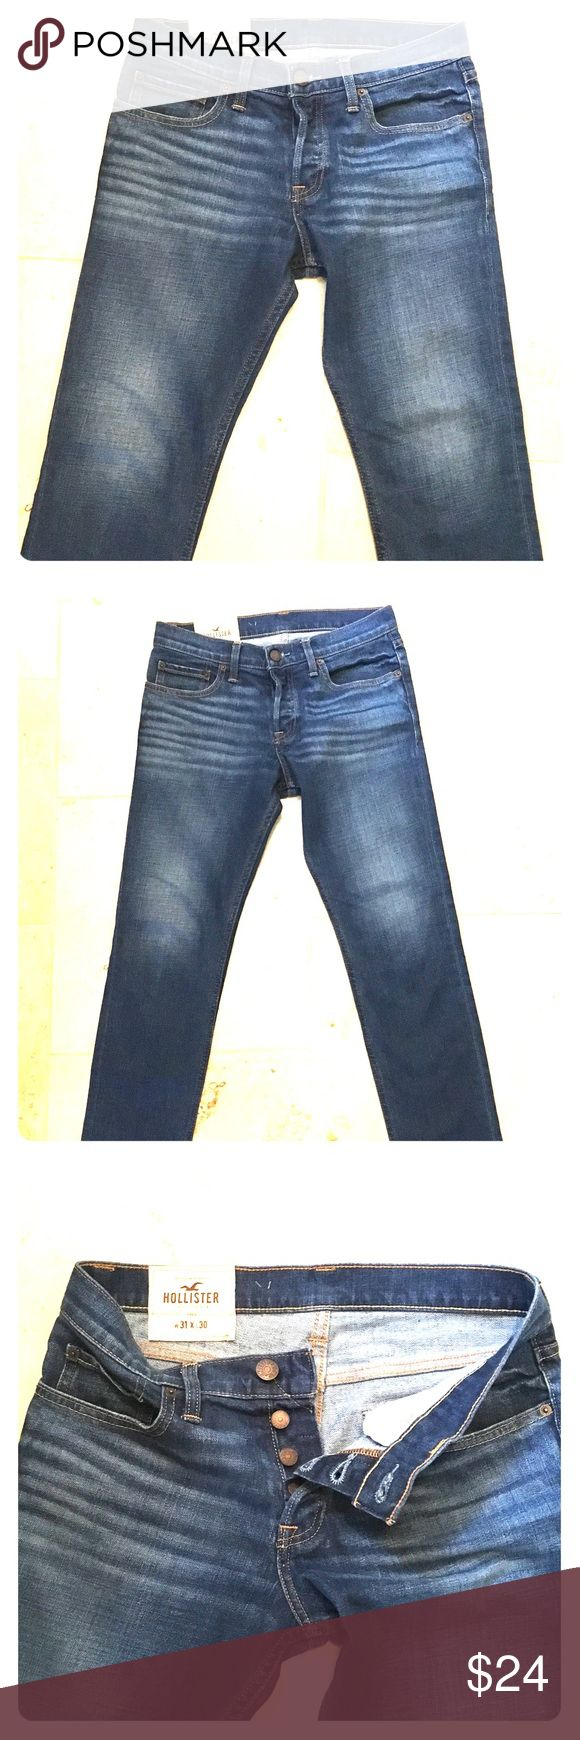 Men's Hollister super skinny jeans Worn once-excellent condition Hollister Jeans Skinny